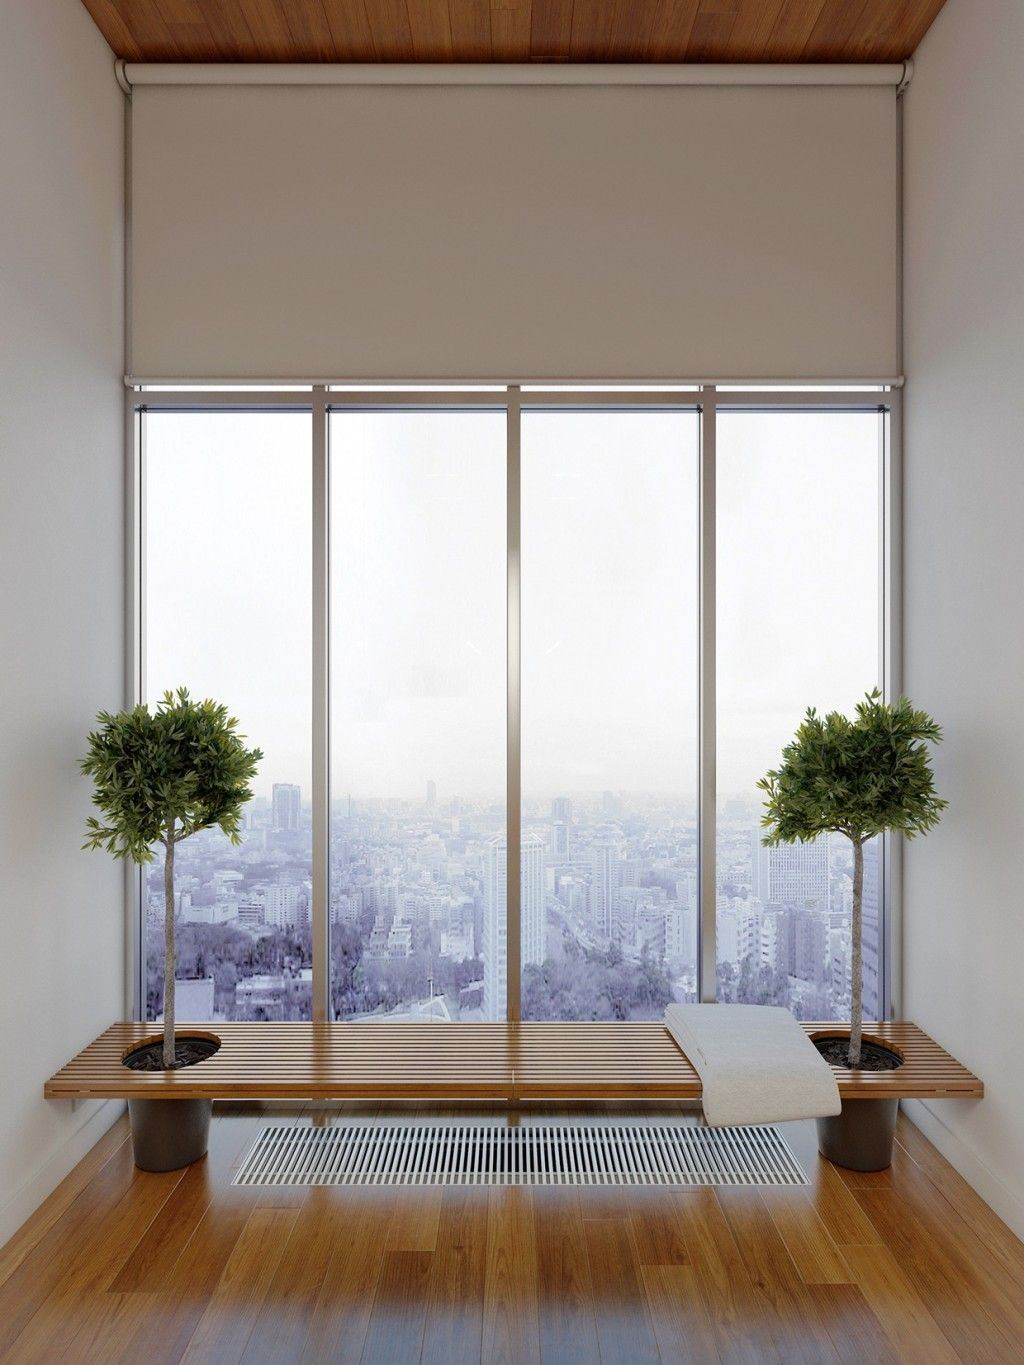 Home Apartment Large Glass Window With City Views With Indoor